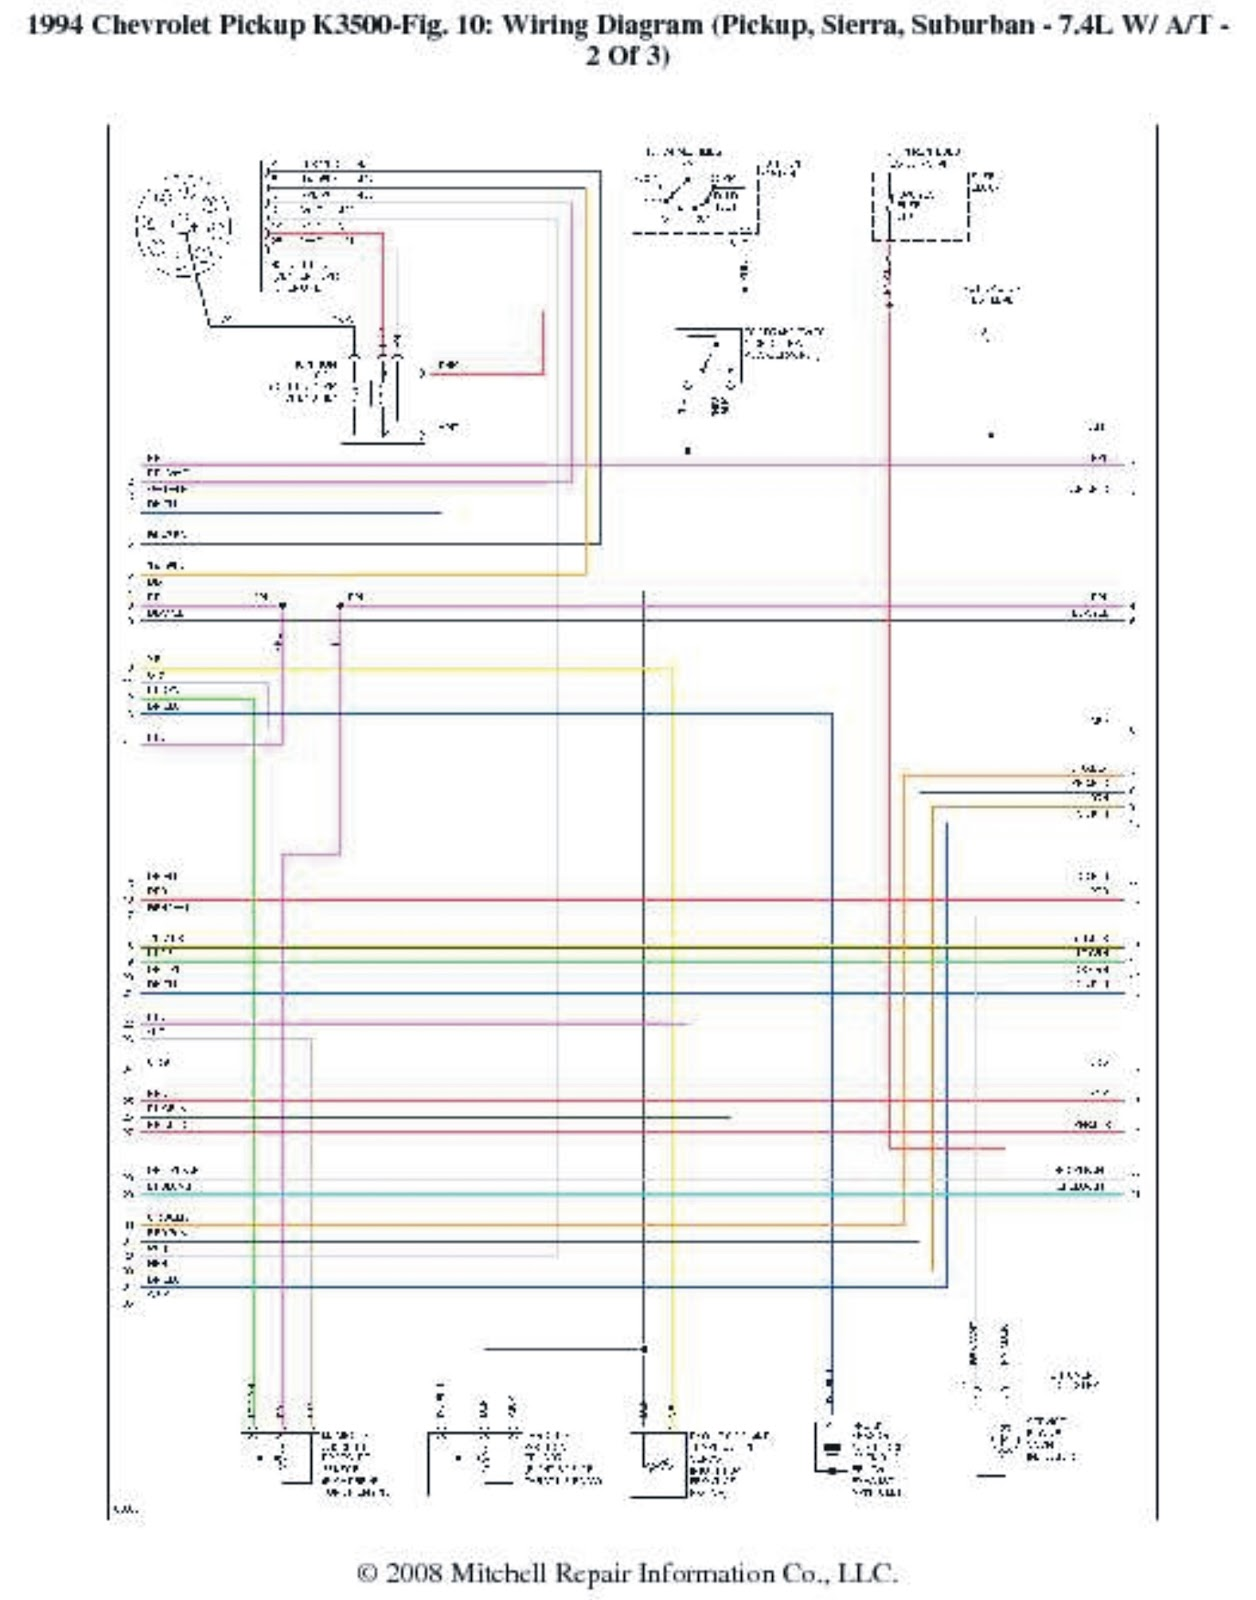 May 2011 Wiring Diagrams Center 1994 Chevrolet 1500 Diagram Sunday 15